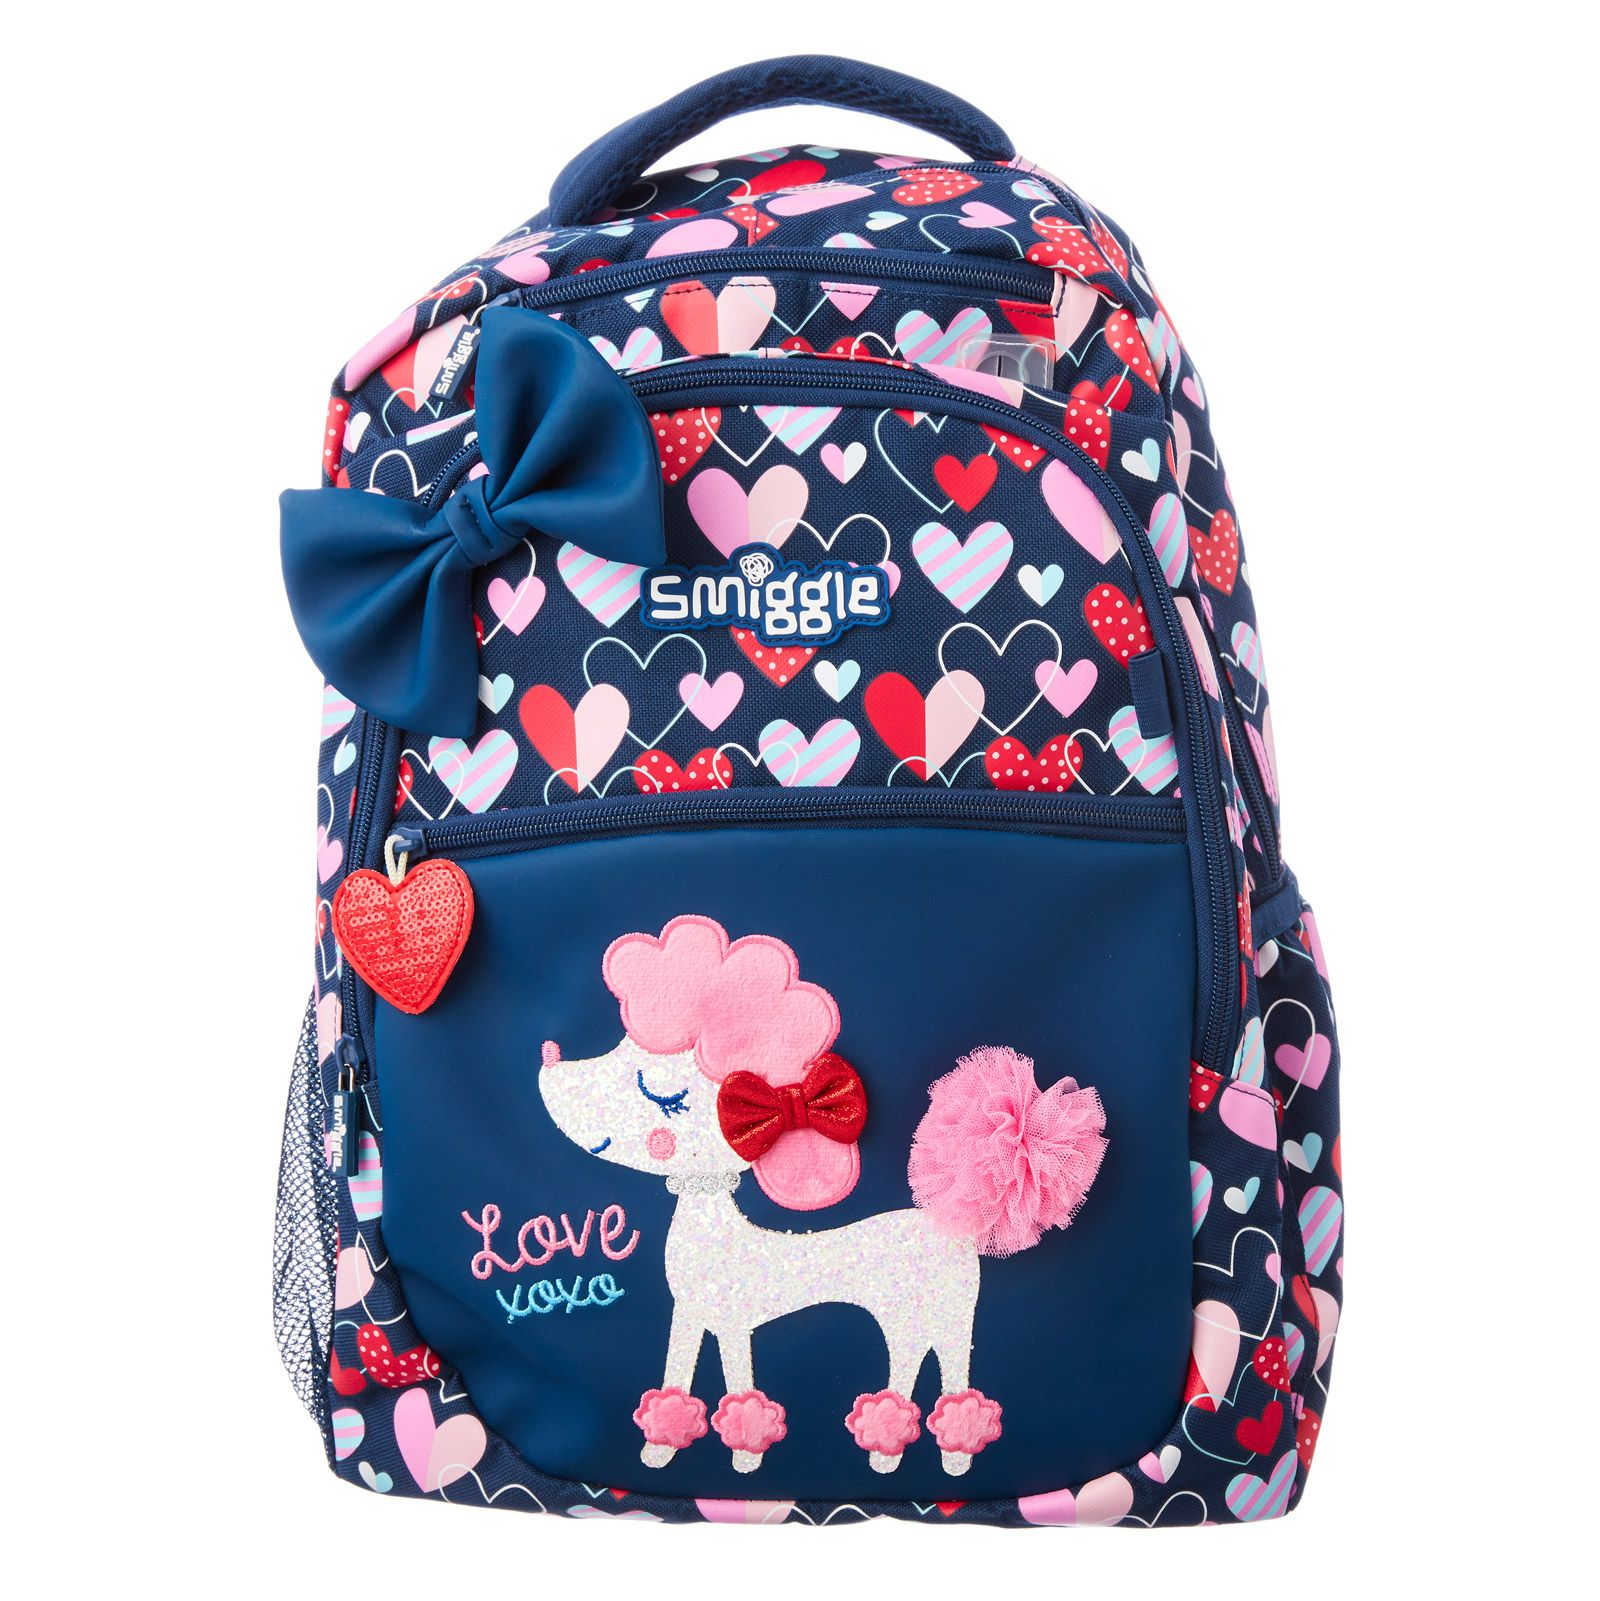 ❤ NEW Girls SMIGGLE Backpack School Bag Rucksack Fluffy Fave Unicorn Glitz Gold